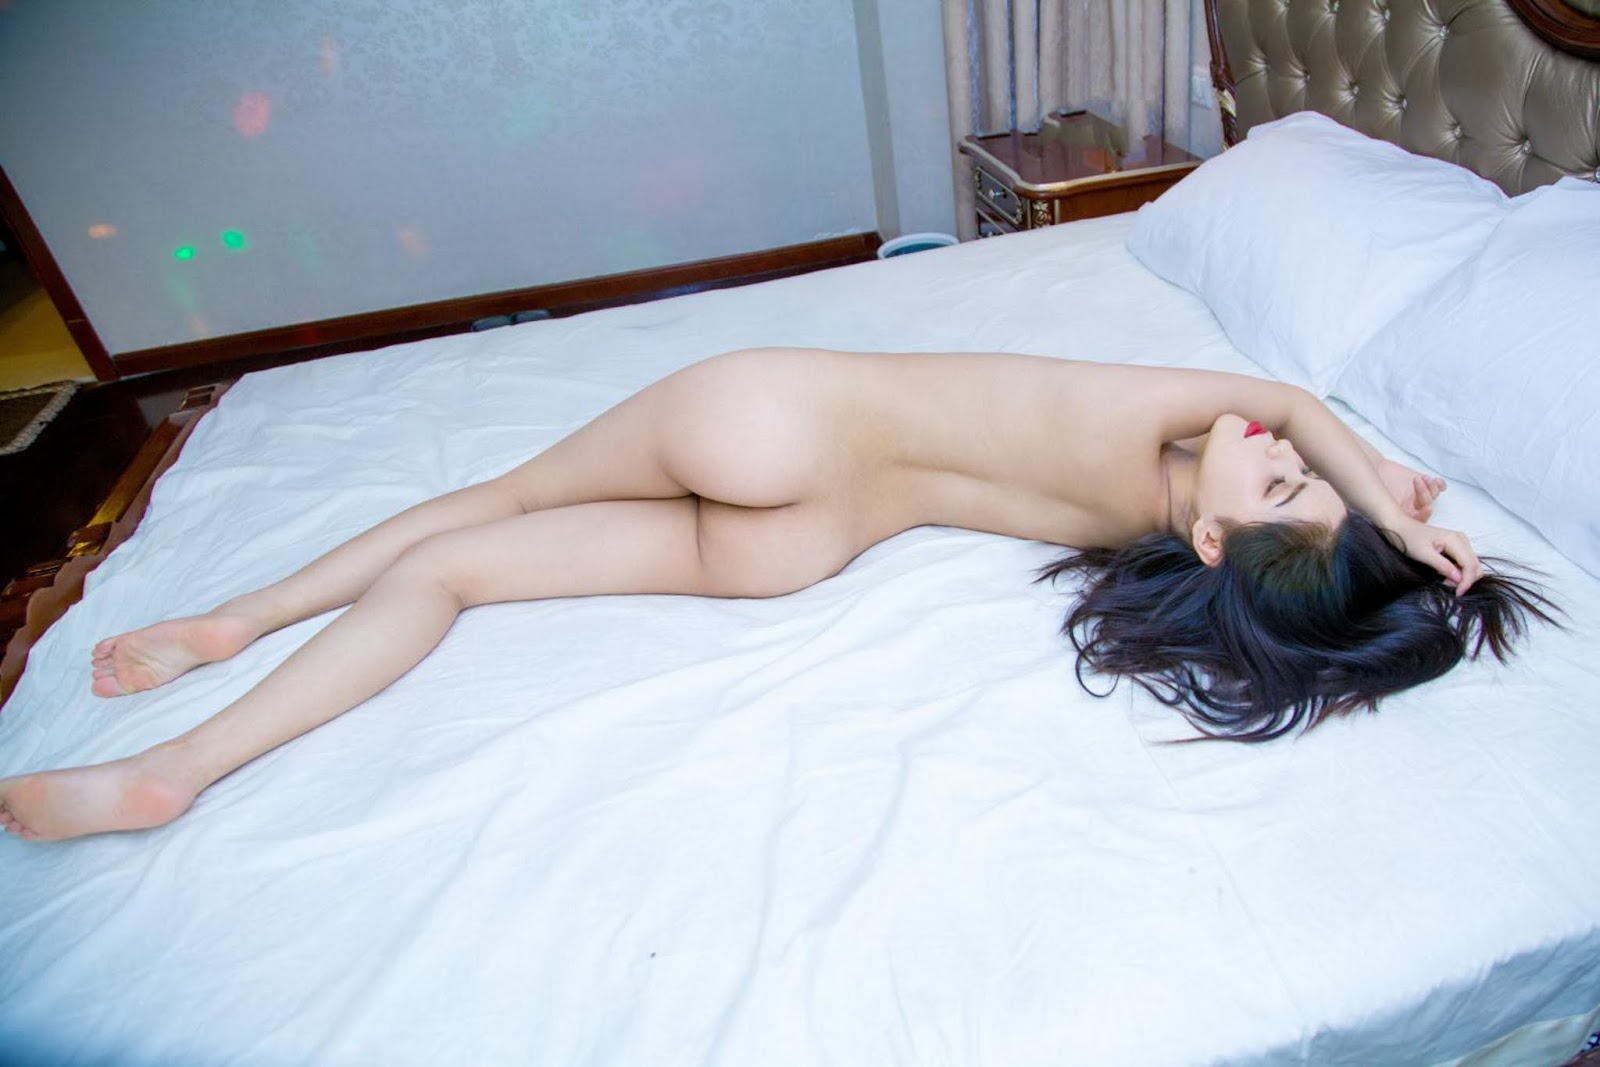 48 - Lake Model Sexy TUIGIRL NO.52 Hot